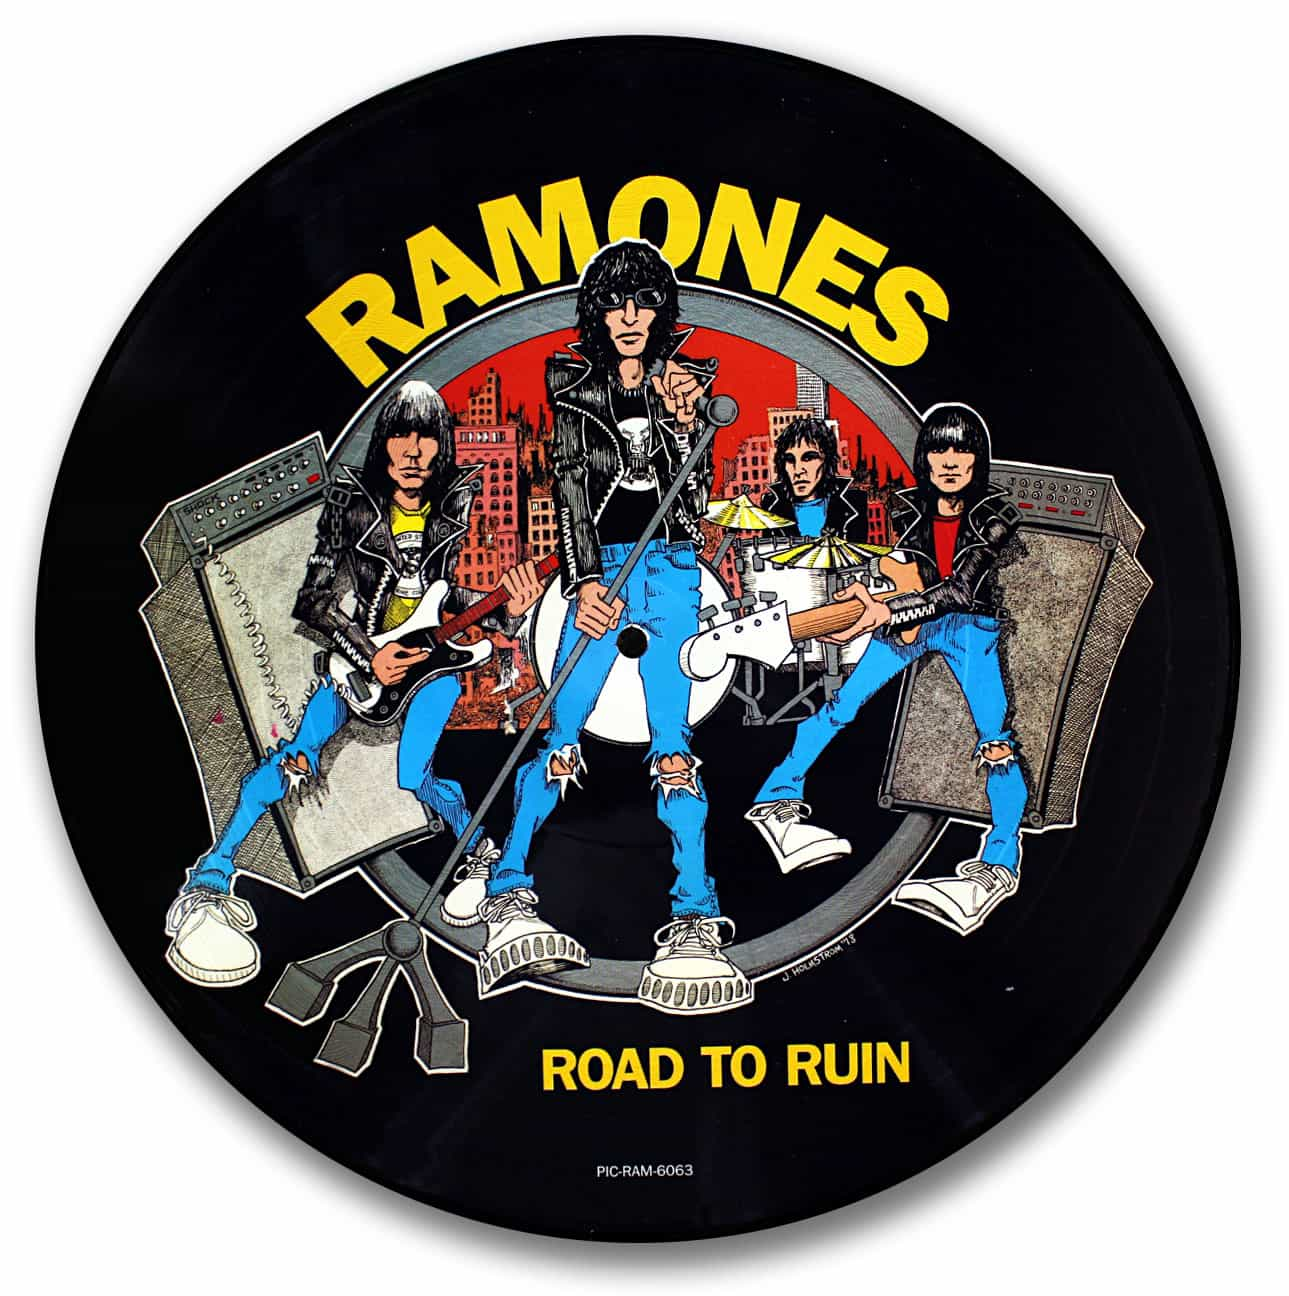 Ramones, Road to Ruin Picture Disc